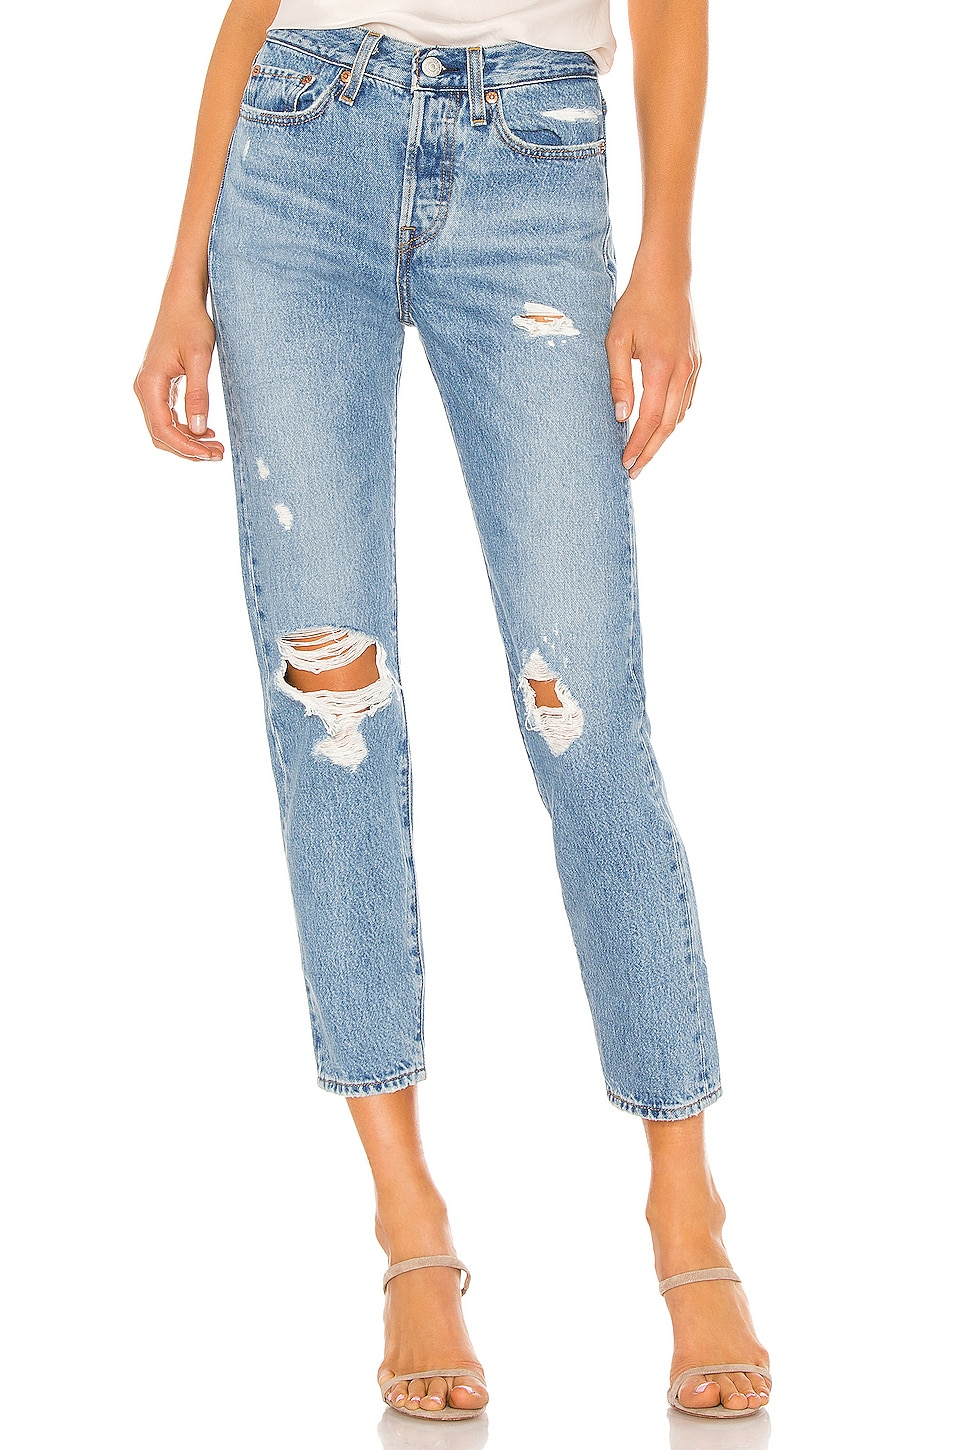 Wedgie Icon Fit             LEVI'S                                                                                                       CA$ 139.34 8